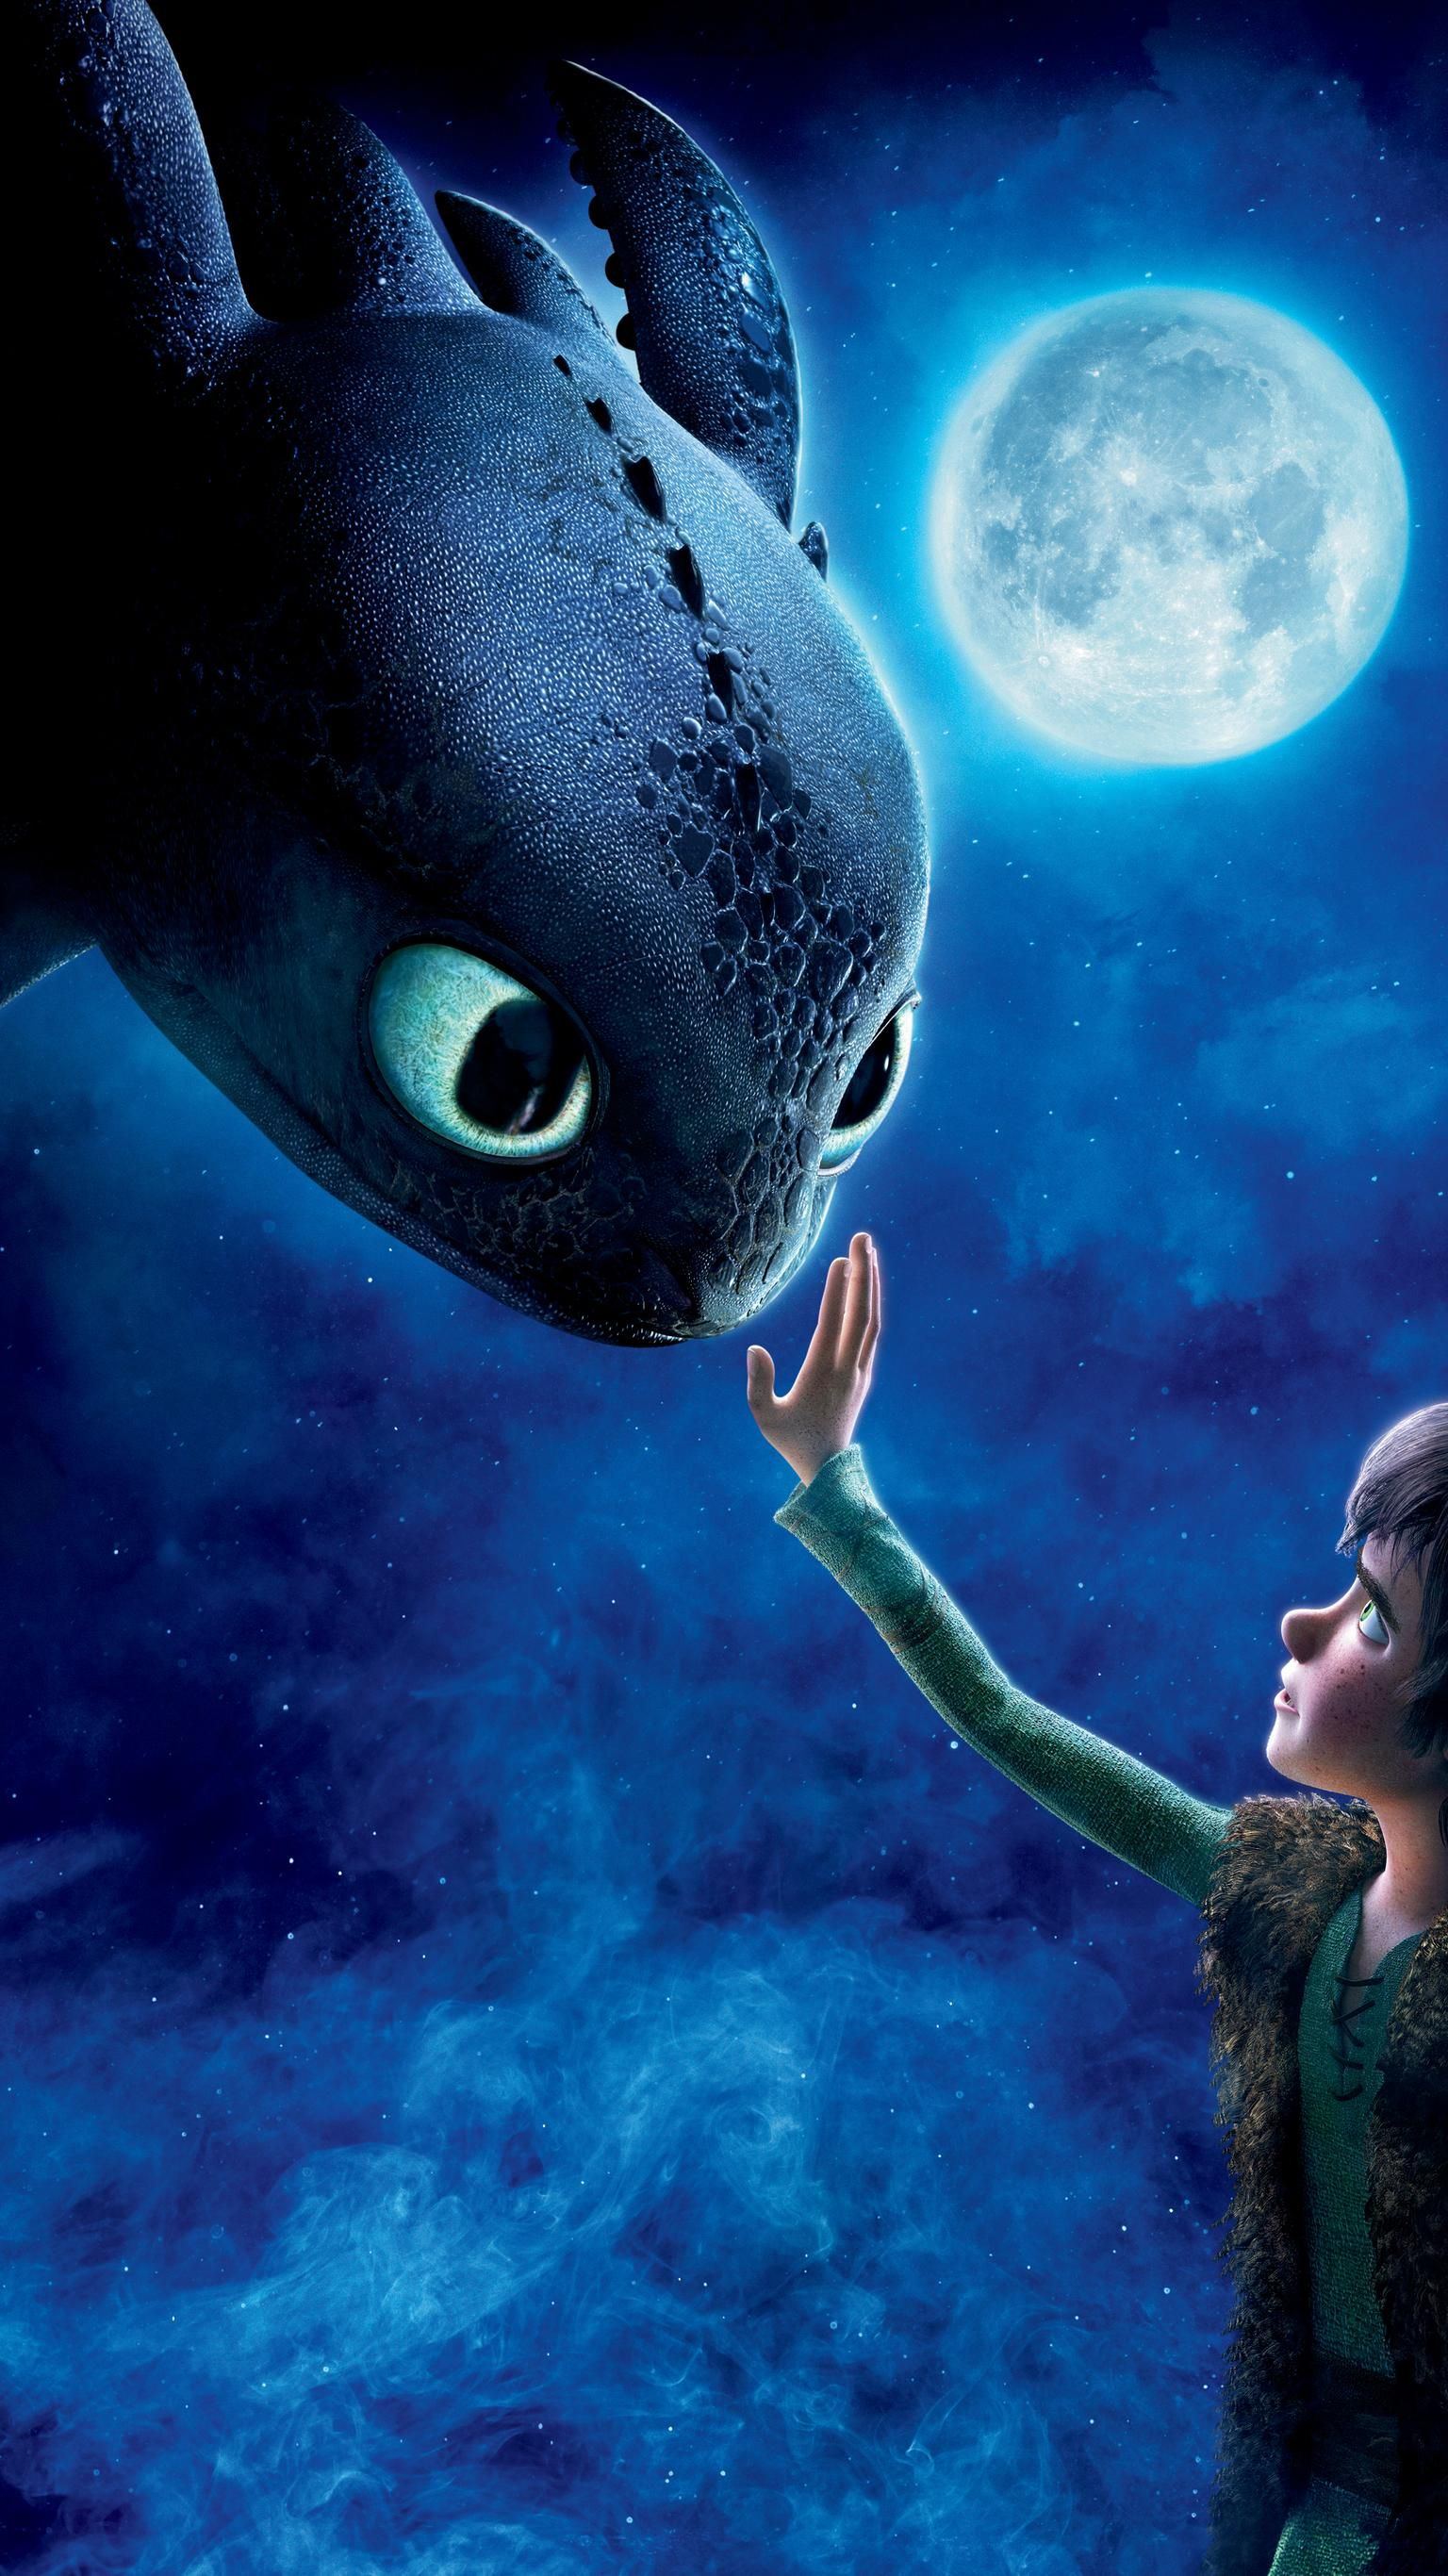 How To Train Your Dragon 2010 Phone Wallpaper In 2020 How